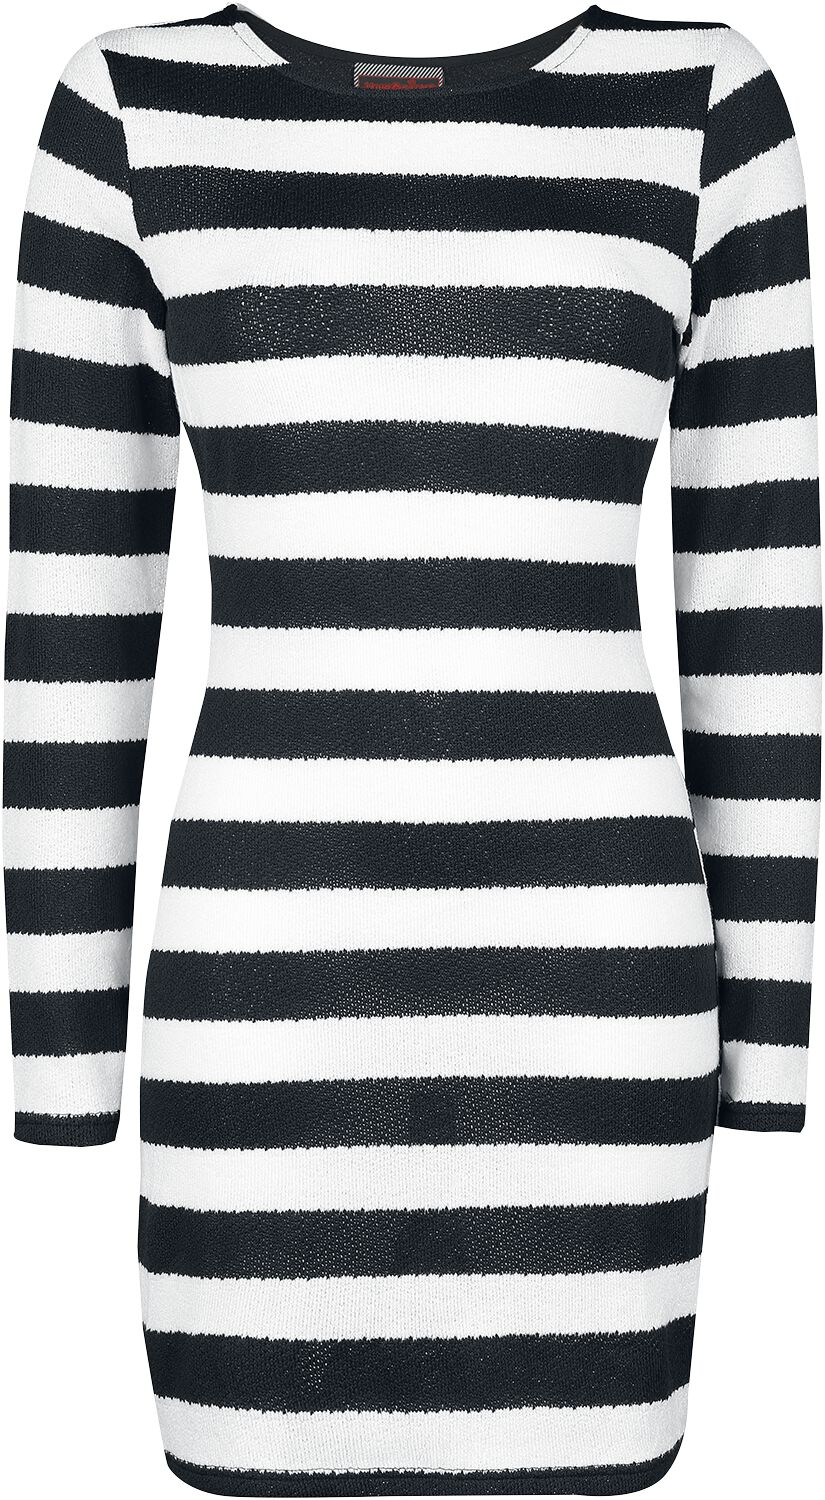 Image of   Jawbreaker Striped Sweater Dress Kjole sort-hvid